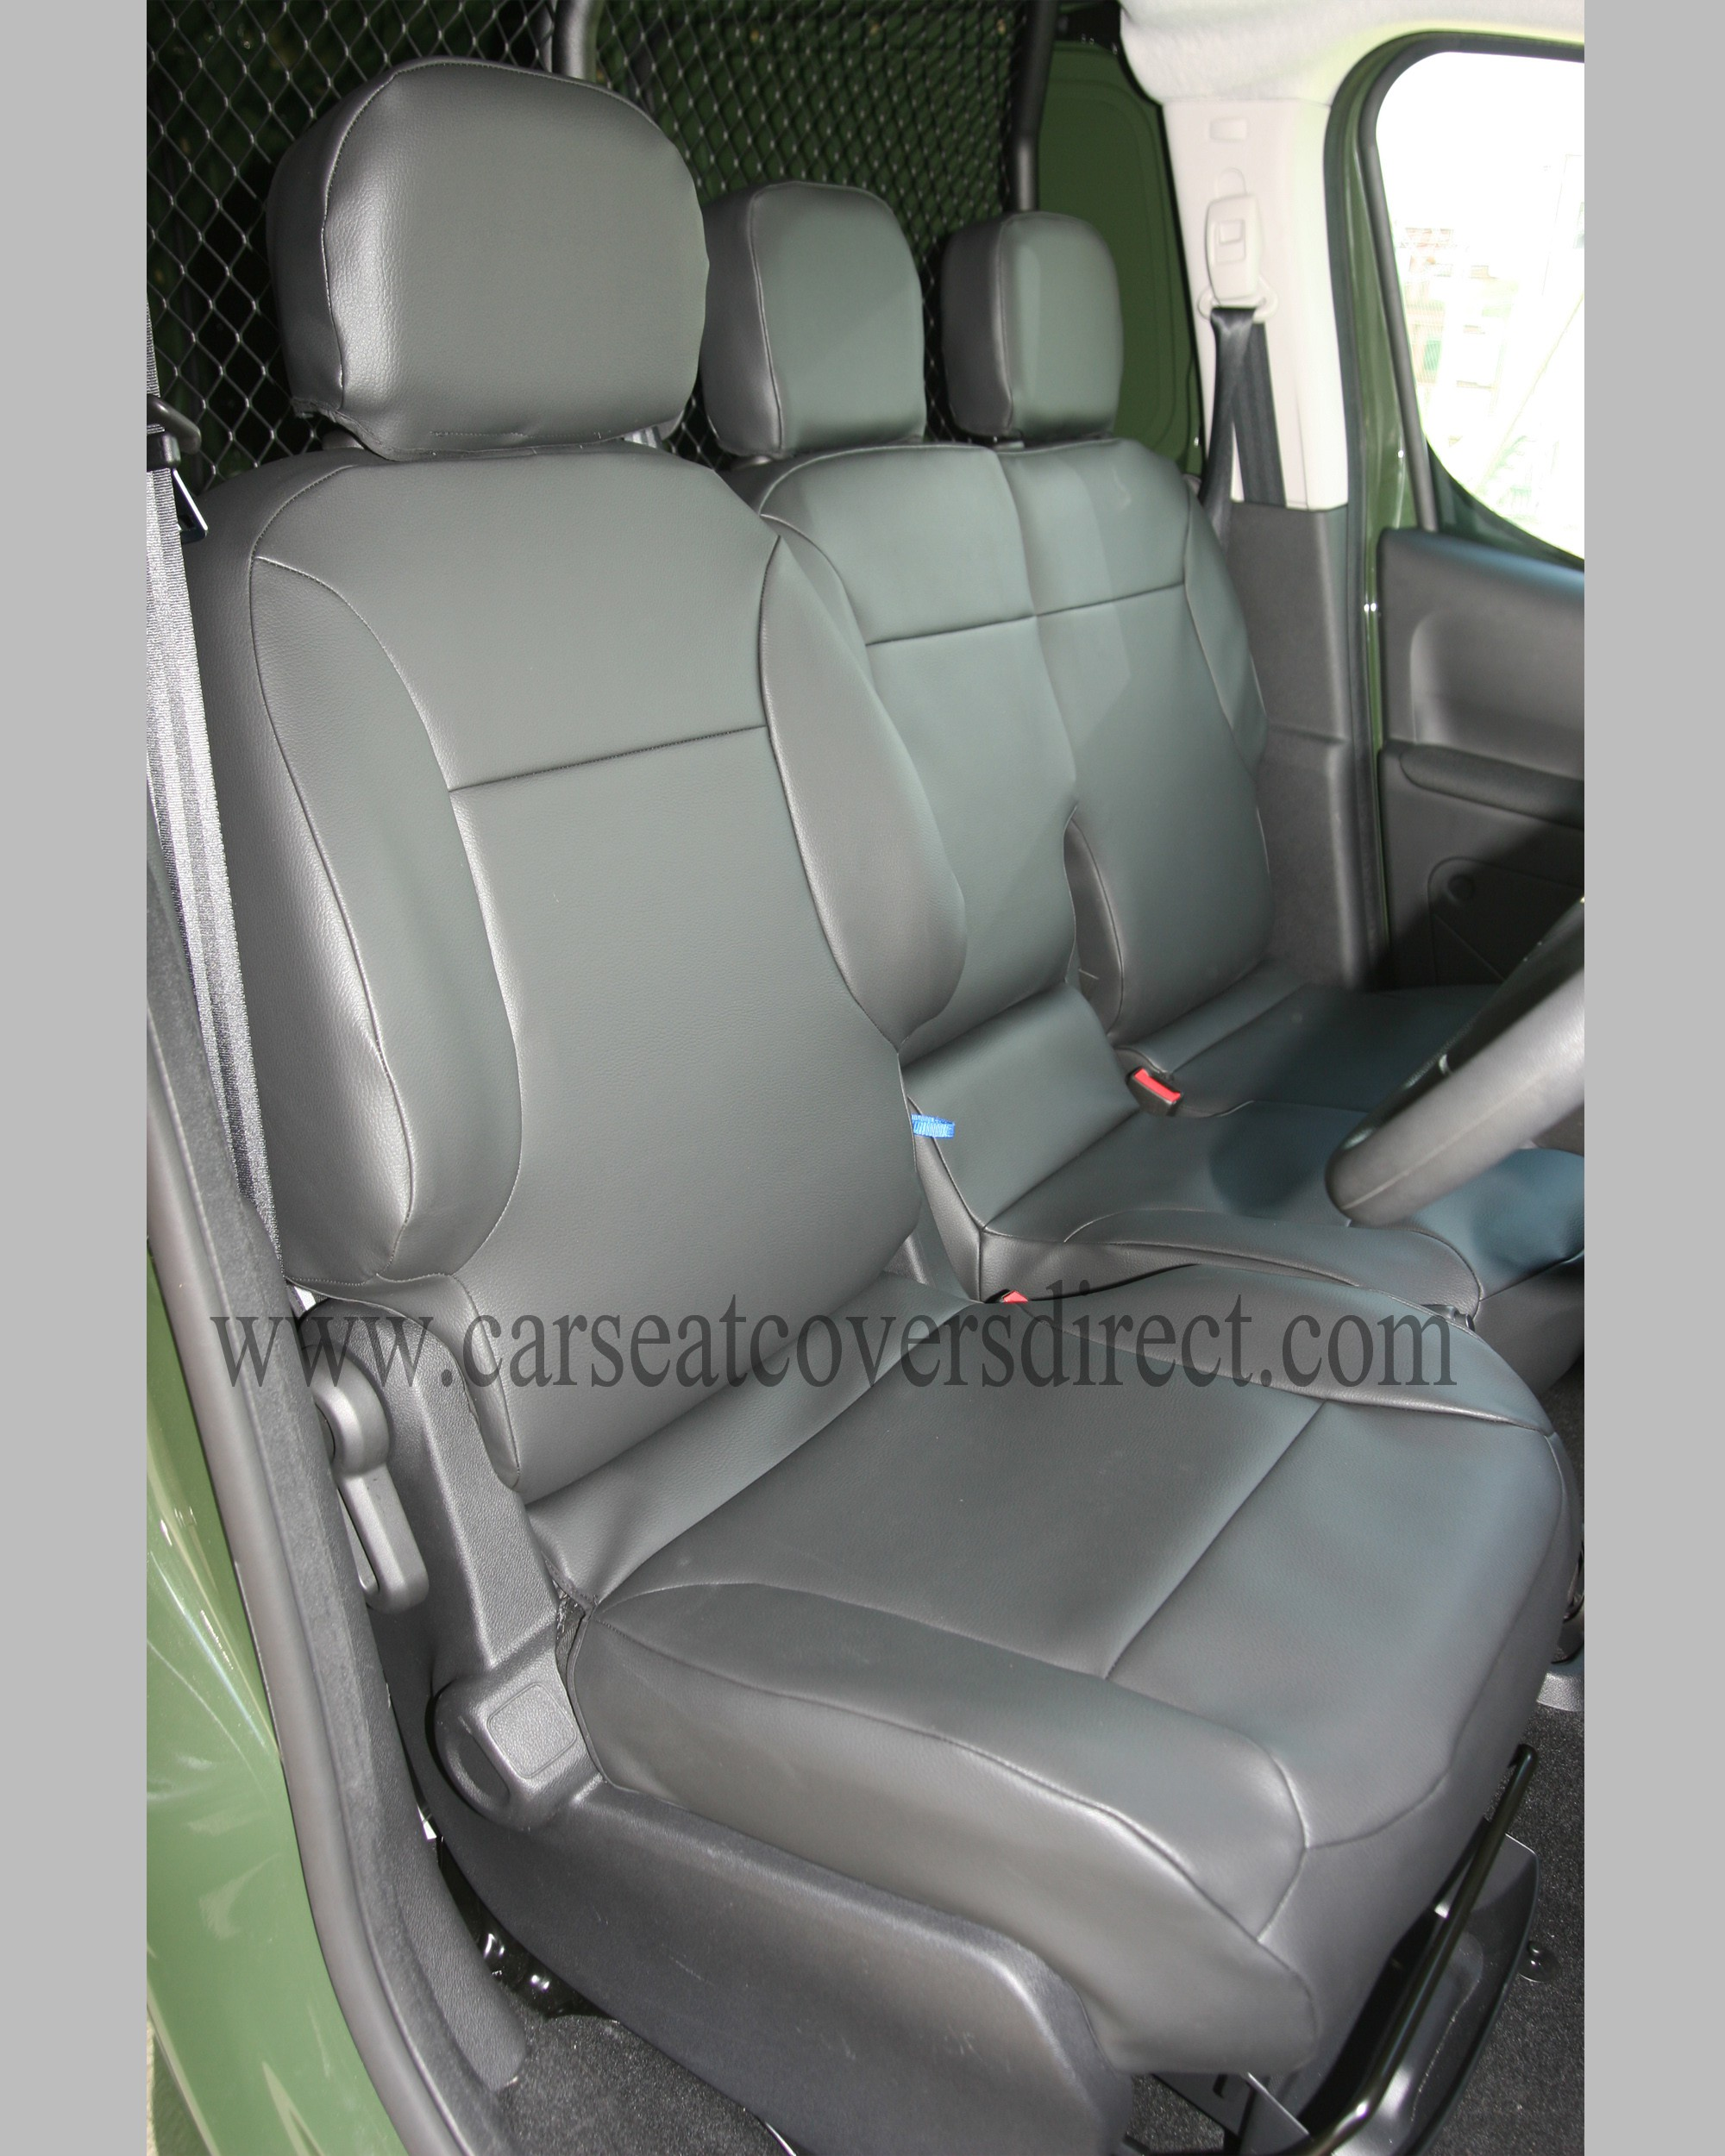 CITROEN BERLINGO black seat covers